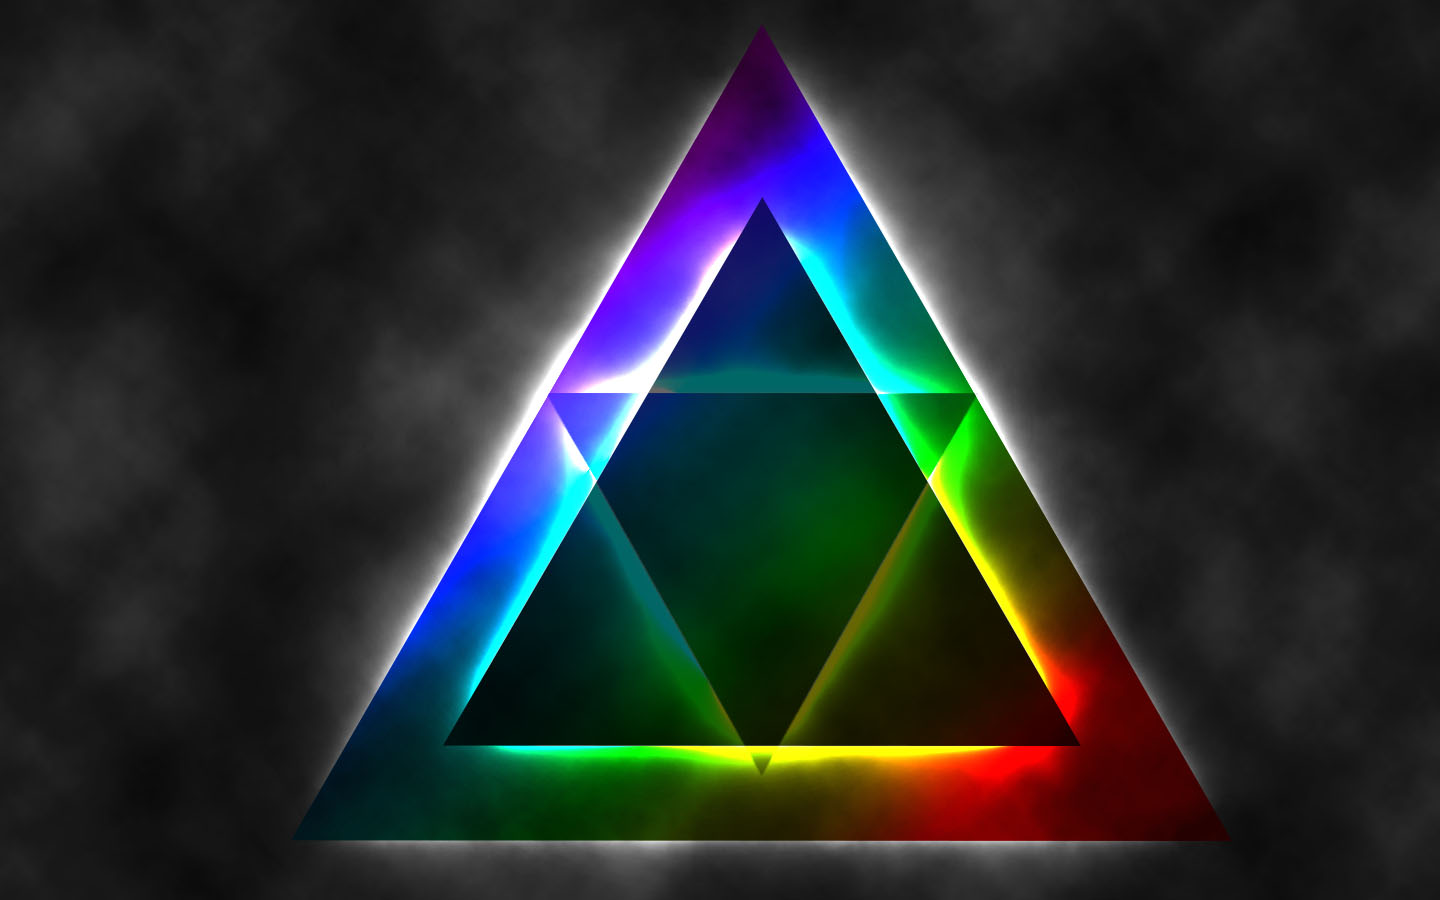 illuminati triangle wallpaper hd - photo #1